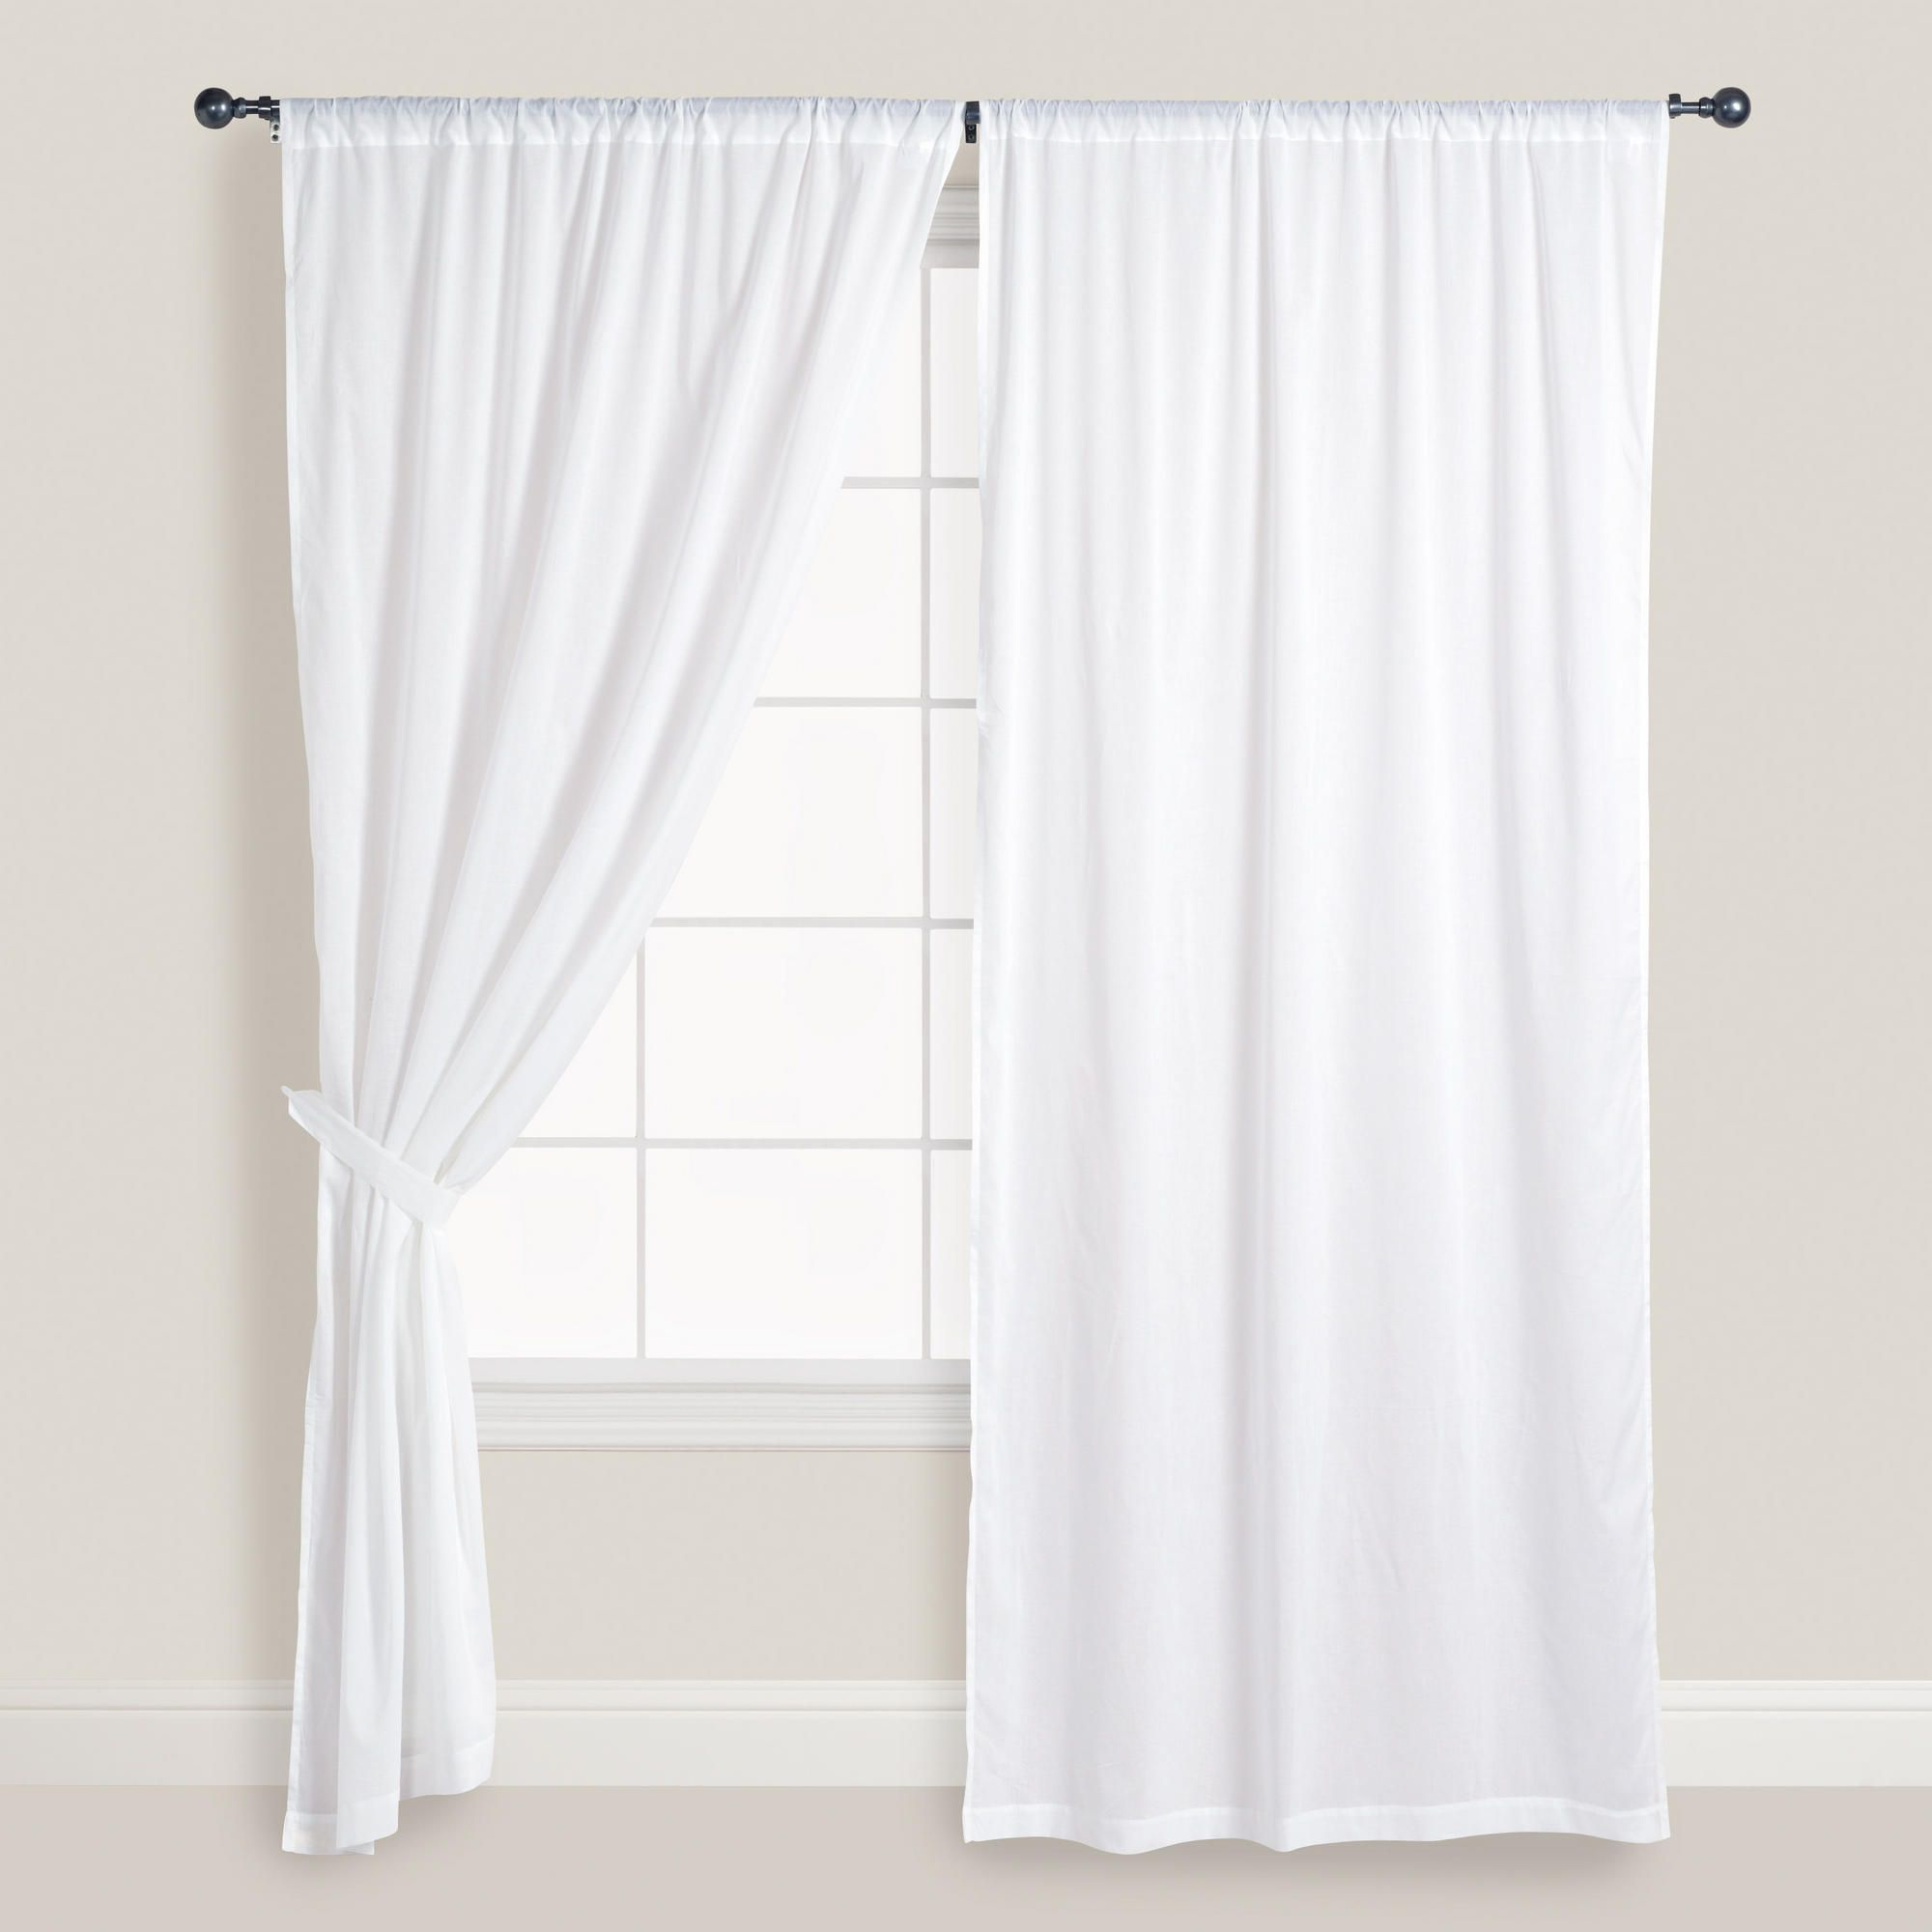 Gordijnen Wit White Cotton Voile Curtains Set Of 2 Window Doors And